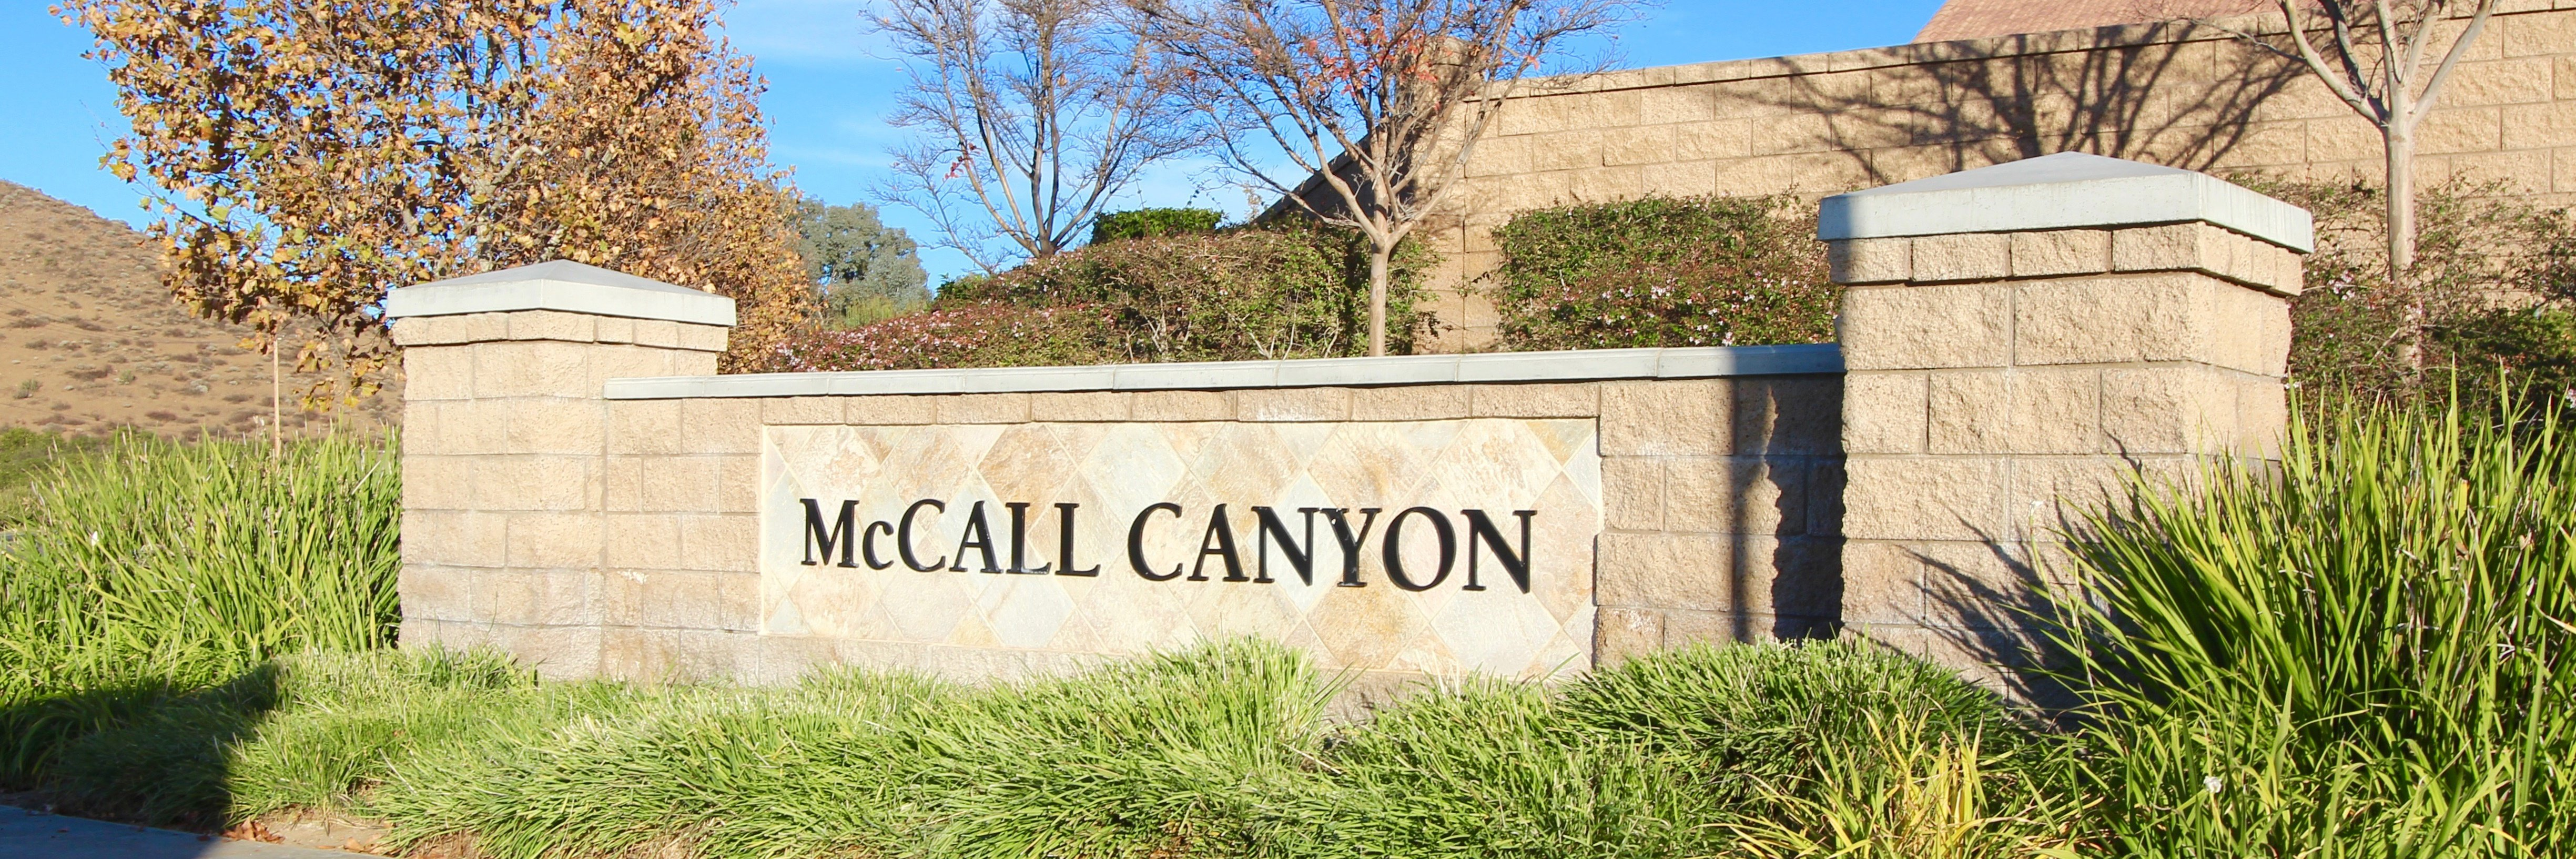 Mccall Canyon Community Marquee in Menifee Ca